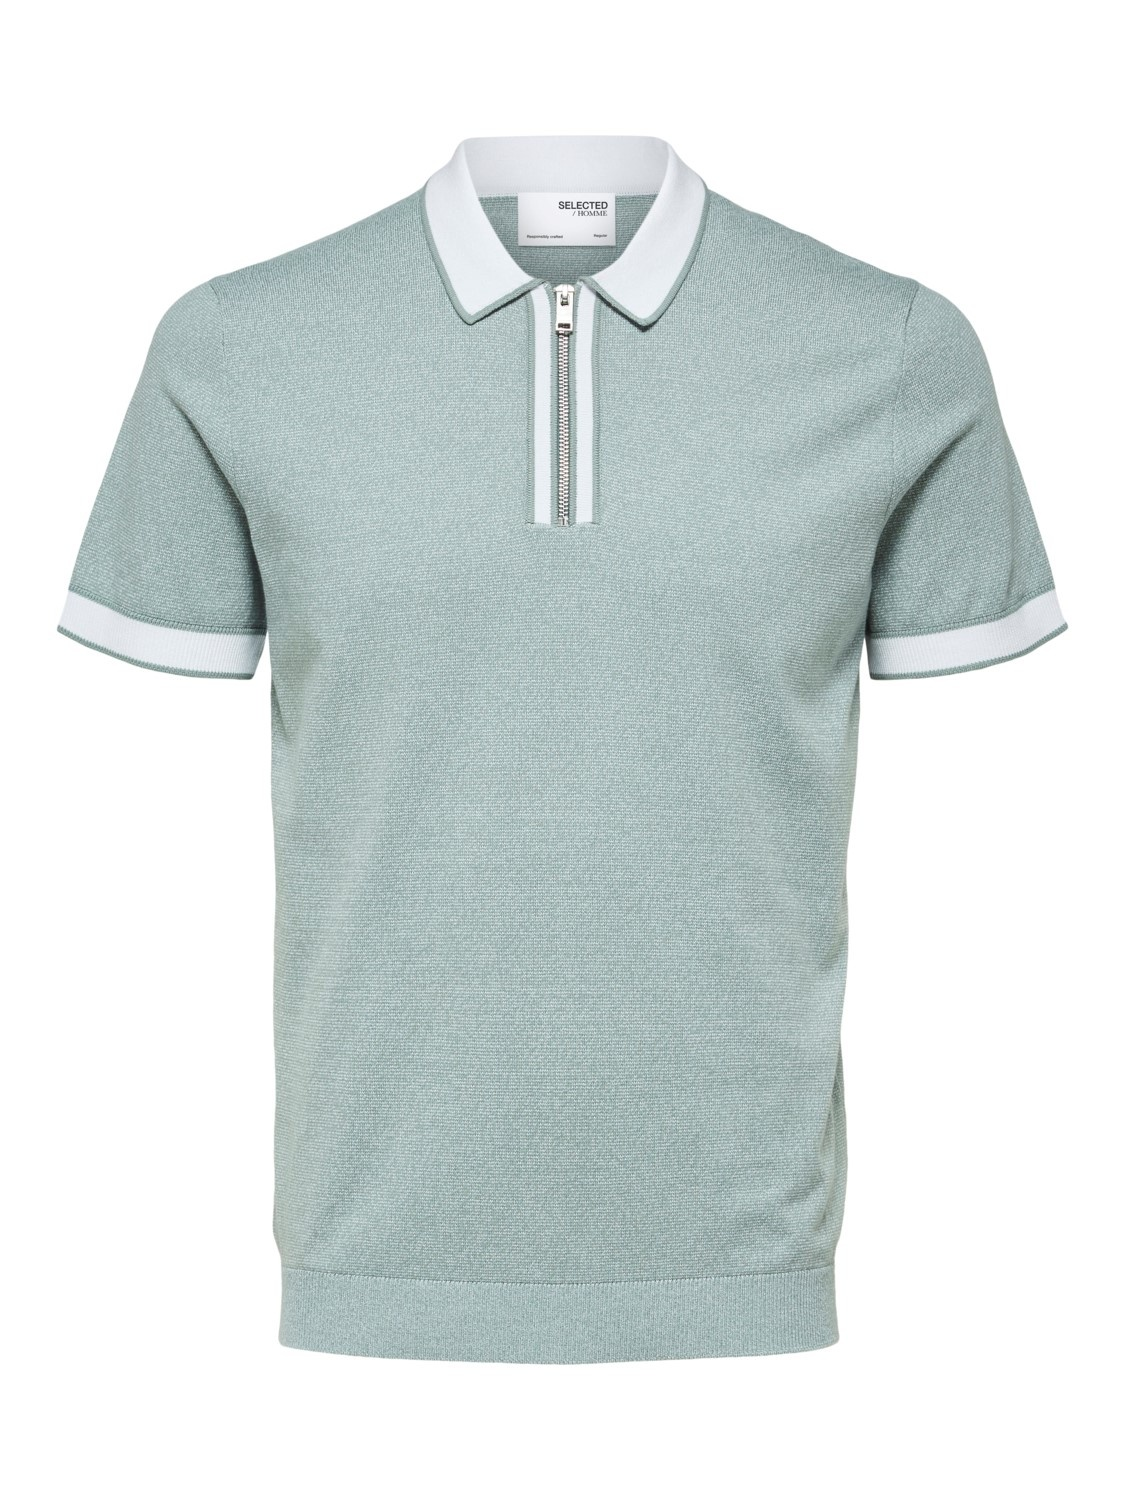 Selected SLHkopen Knit Polo